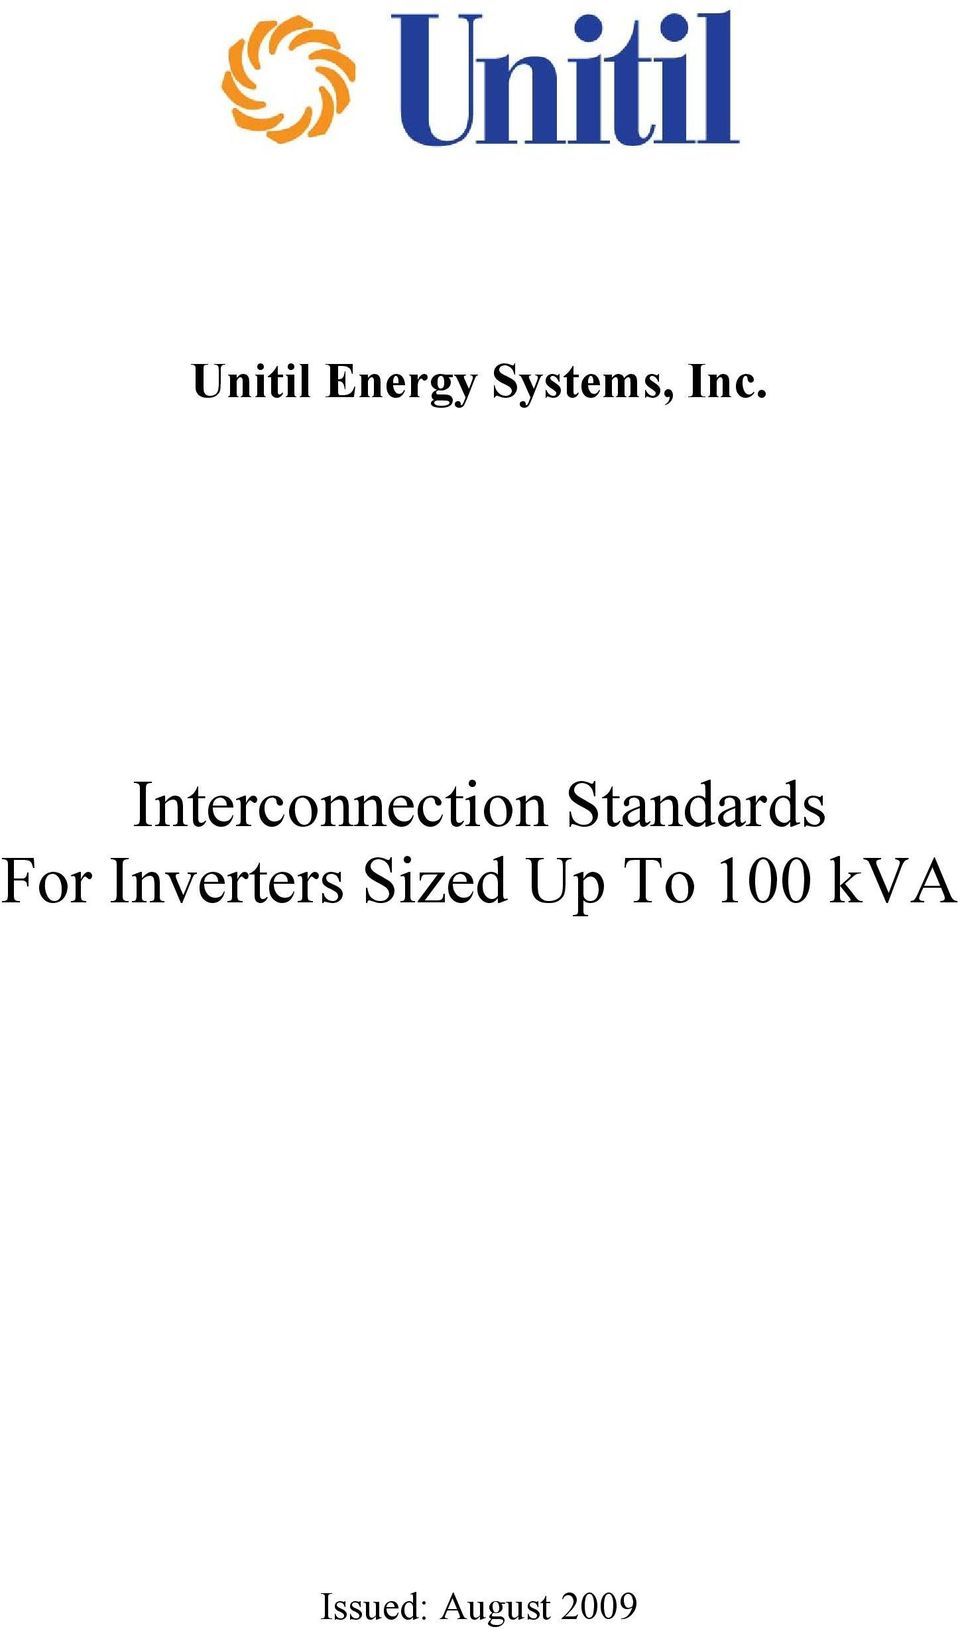 For Inverters Sized Up To